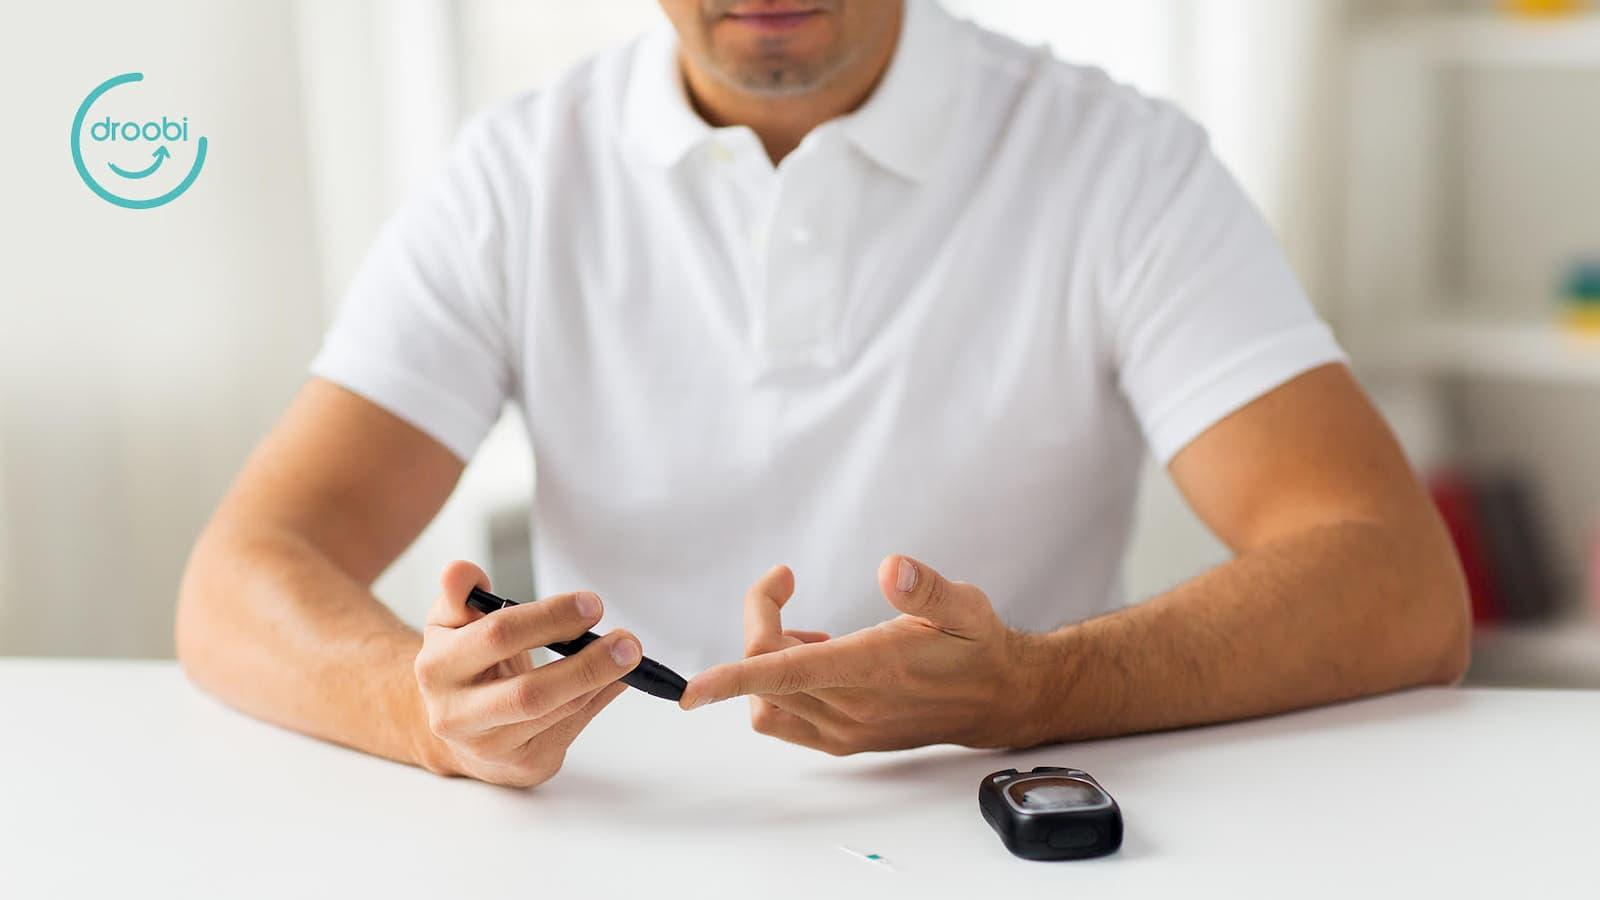 Droobi offers digital therapeutic solutions for diabetics, minimizing risk of COVID-19